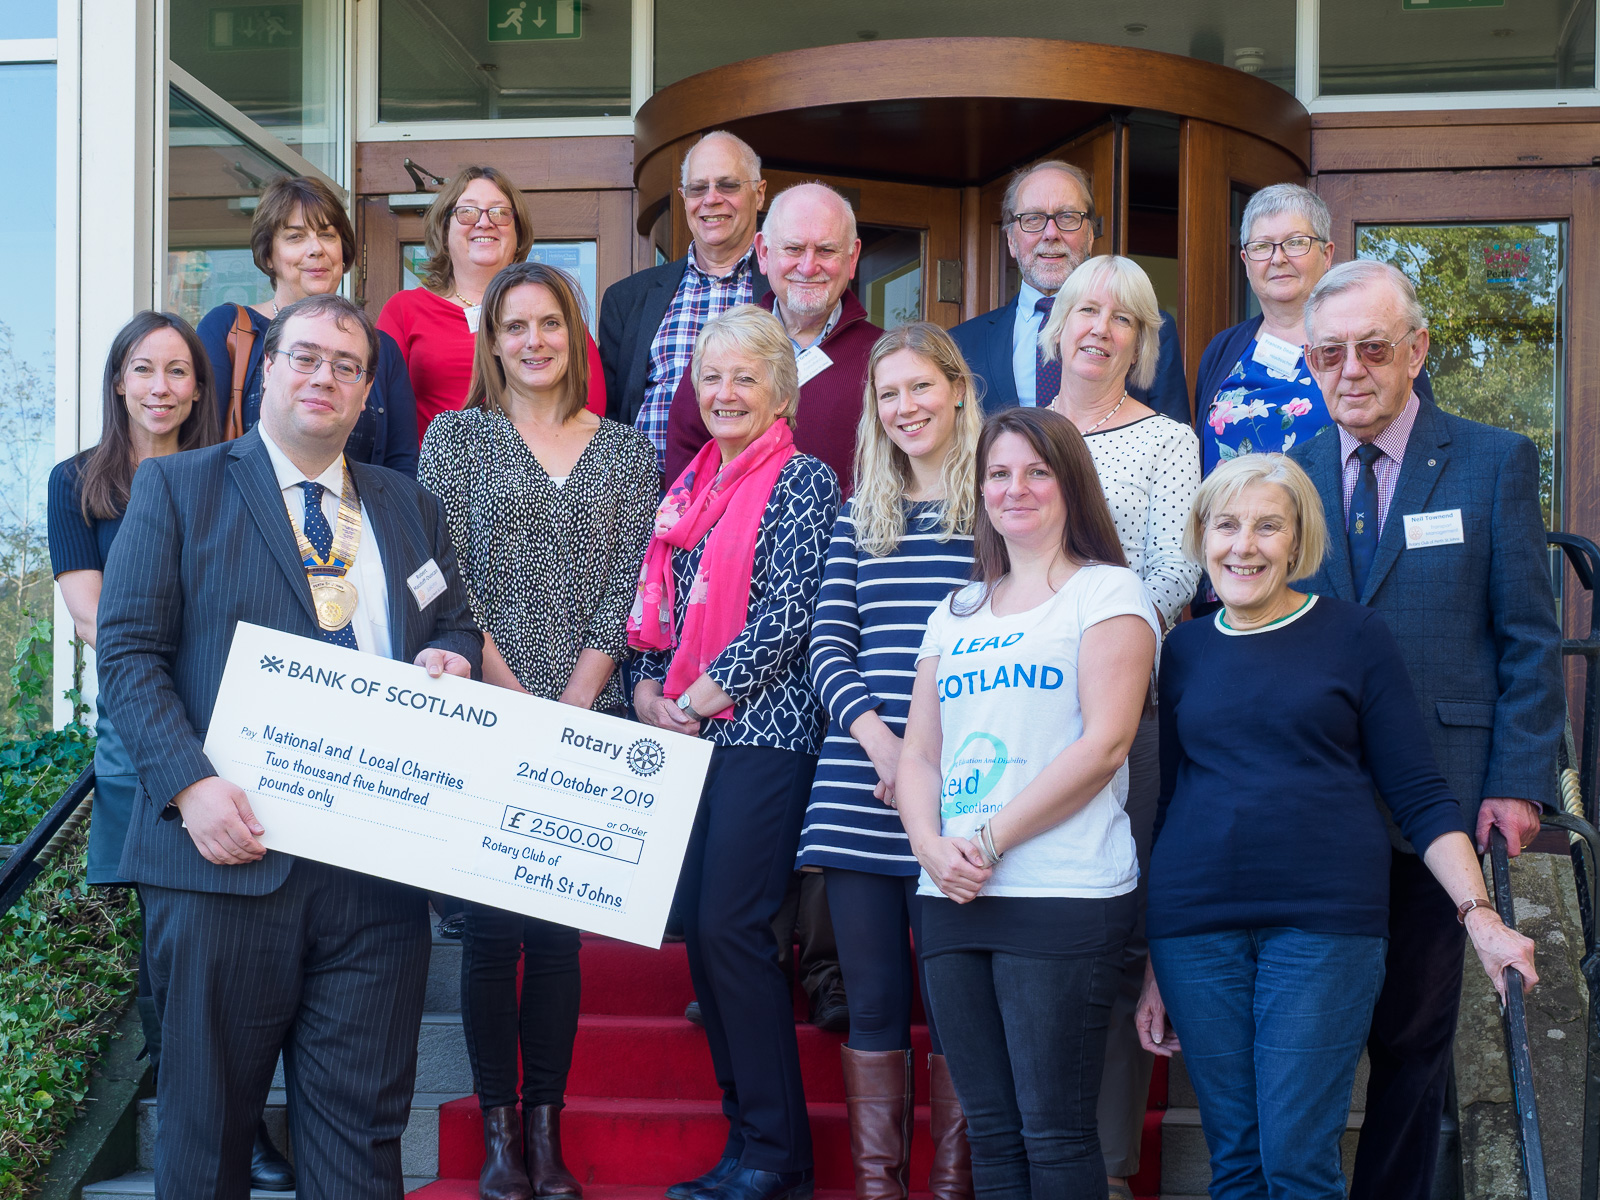 Charity representatives and Rotarians with a big cheque